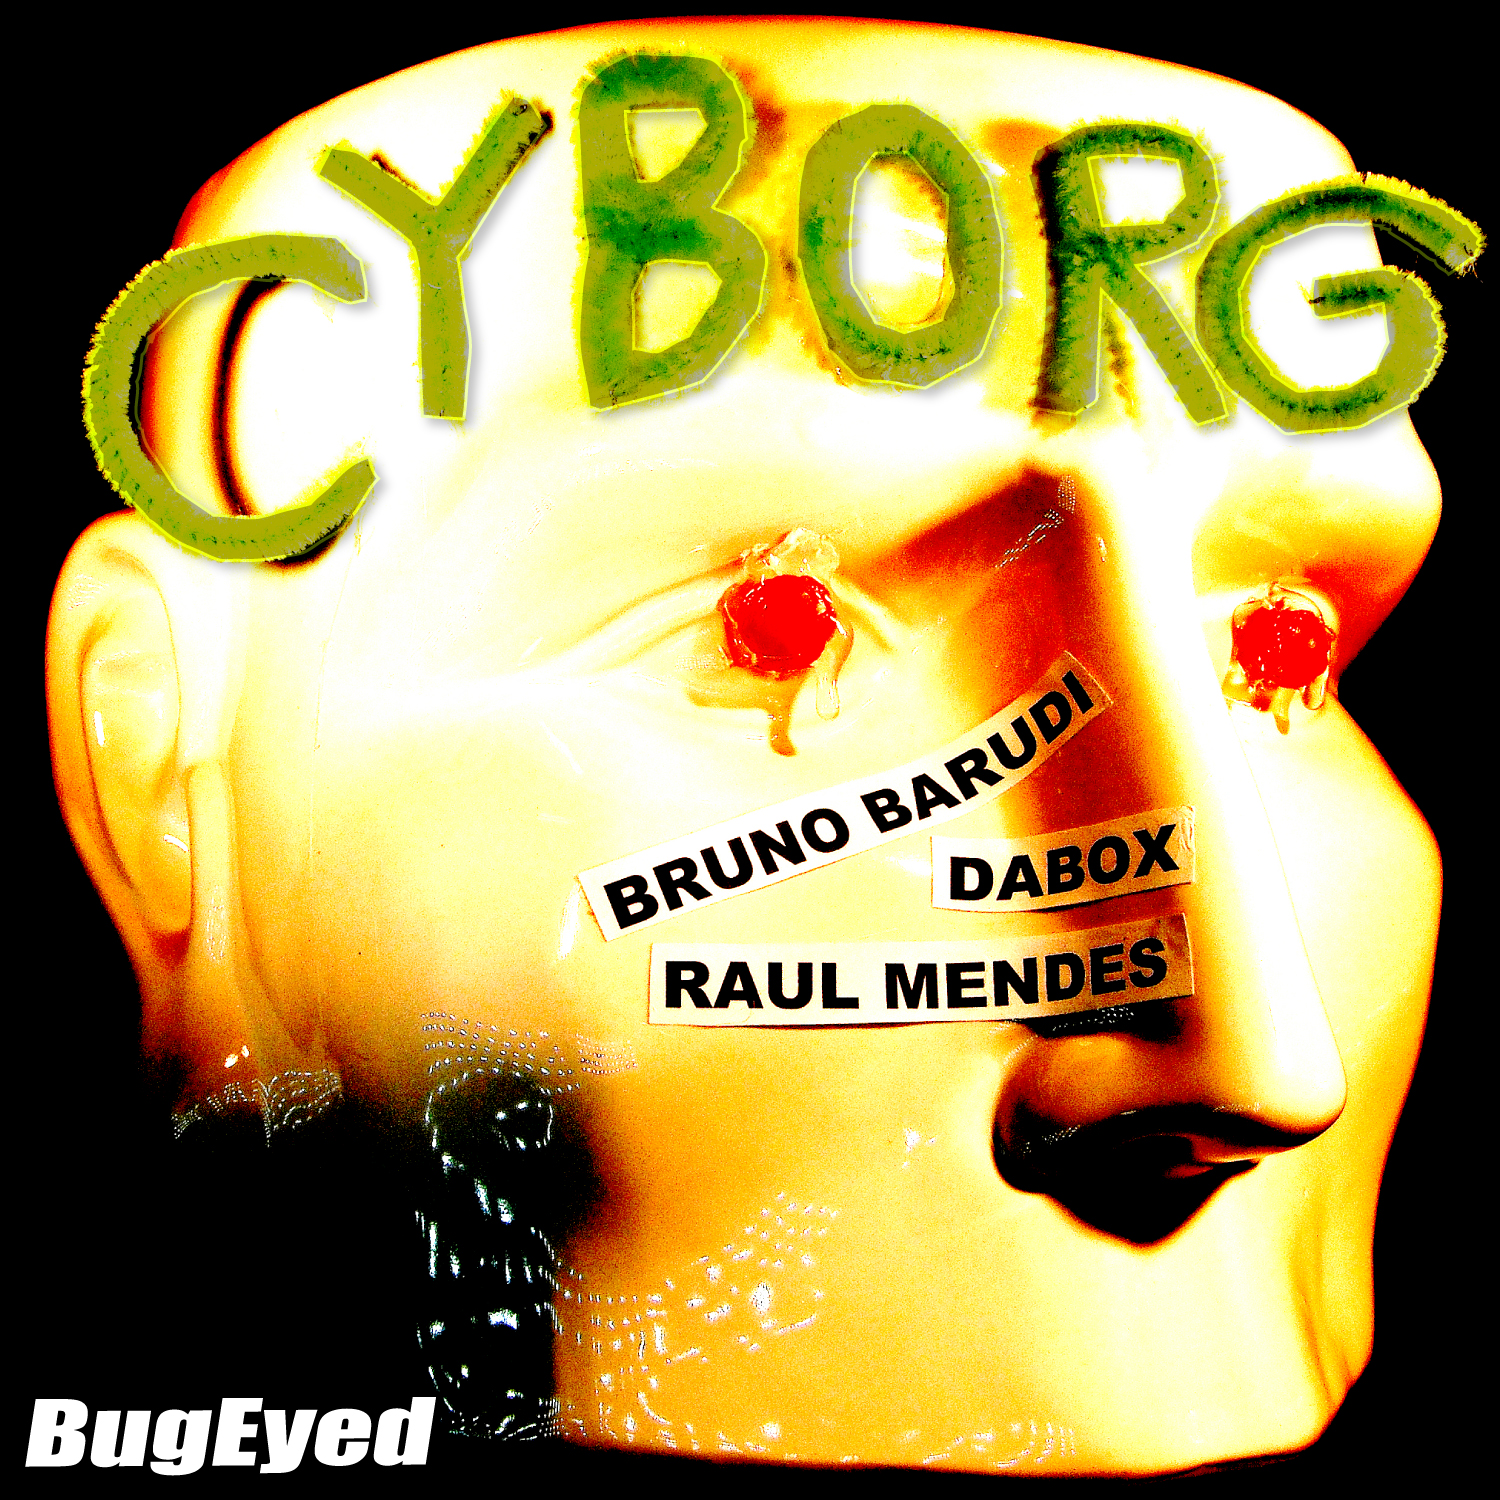 Bruno Barudi, Dabox, Raul Mendes - Cyborg (Original Mix)